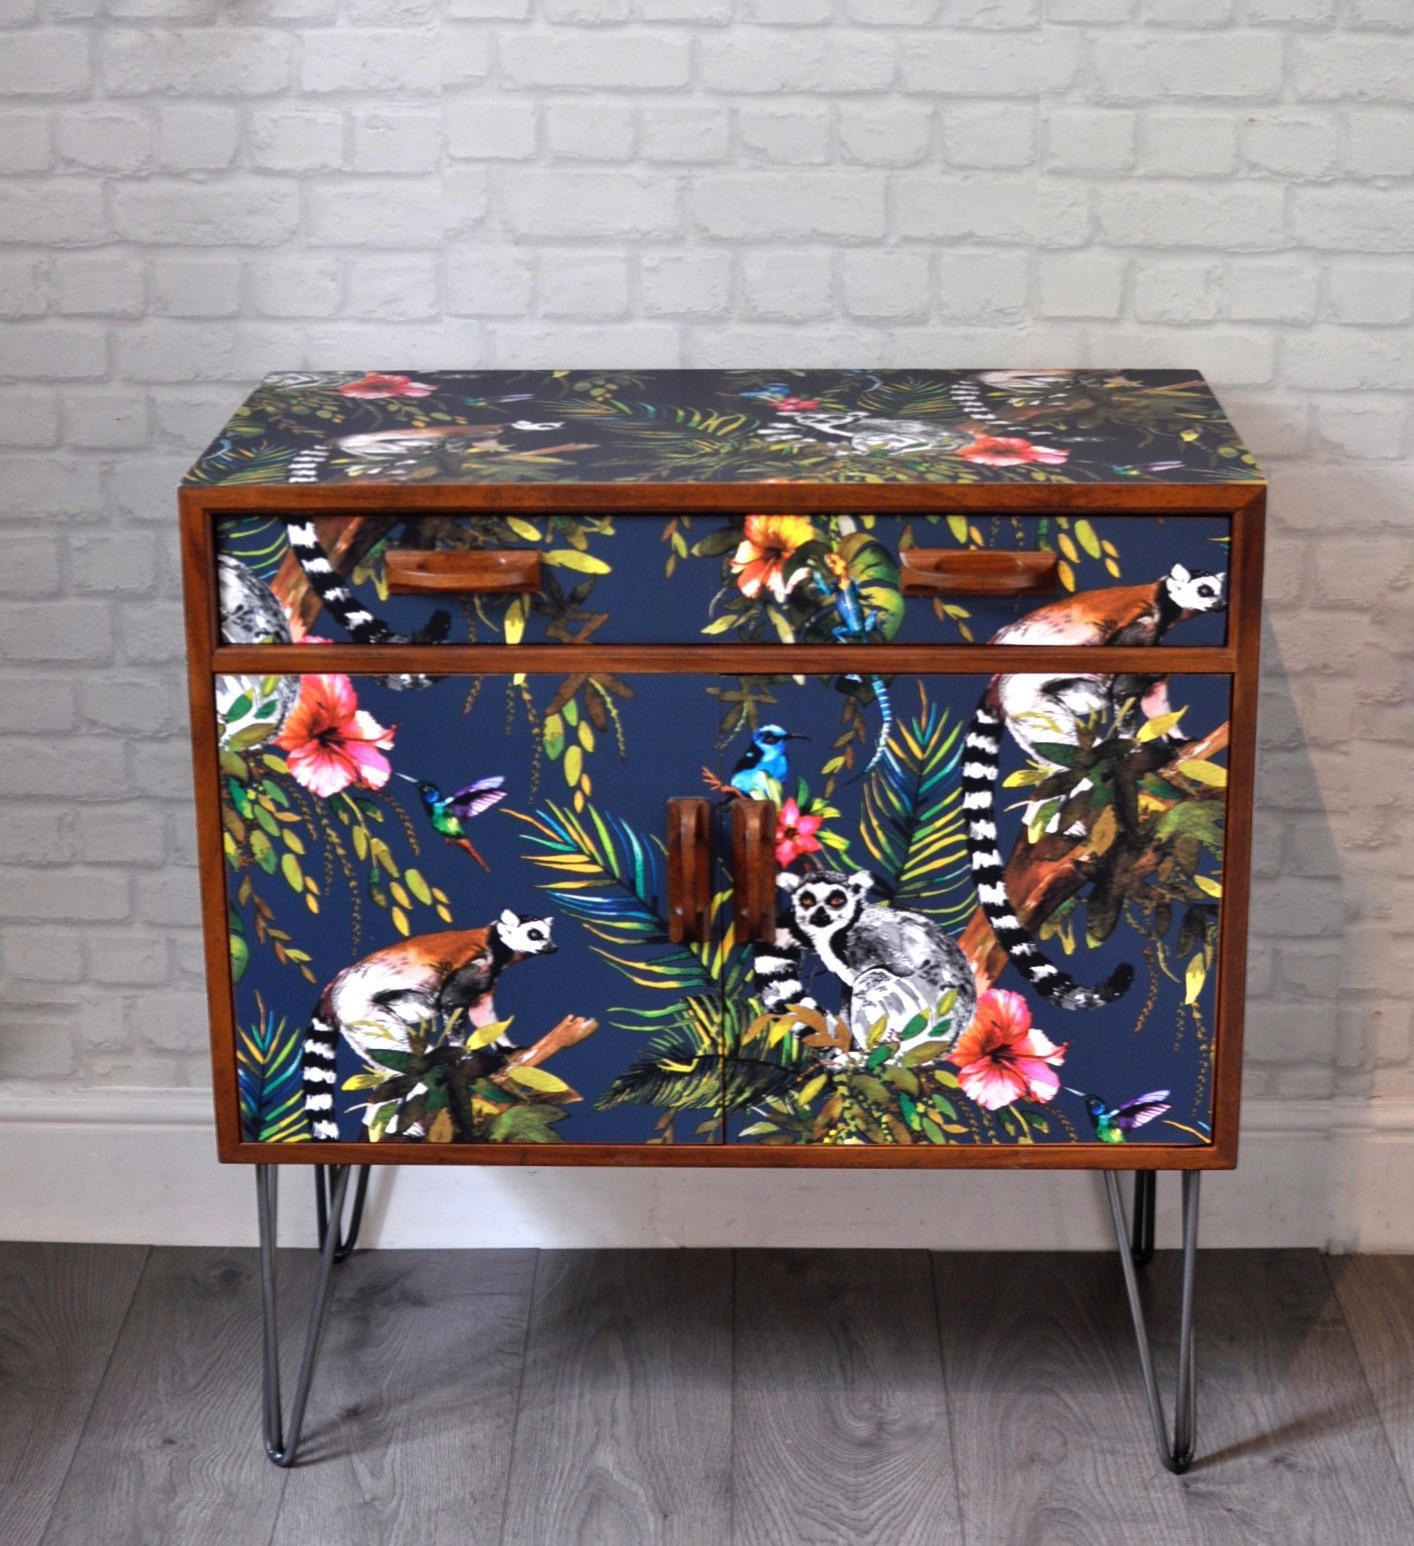 Upcycled Vintage Mid Century G Plan Cabinet With Retro Industrial Hairpin Legs And Navy Lemur